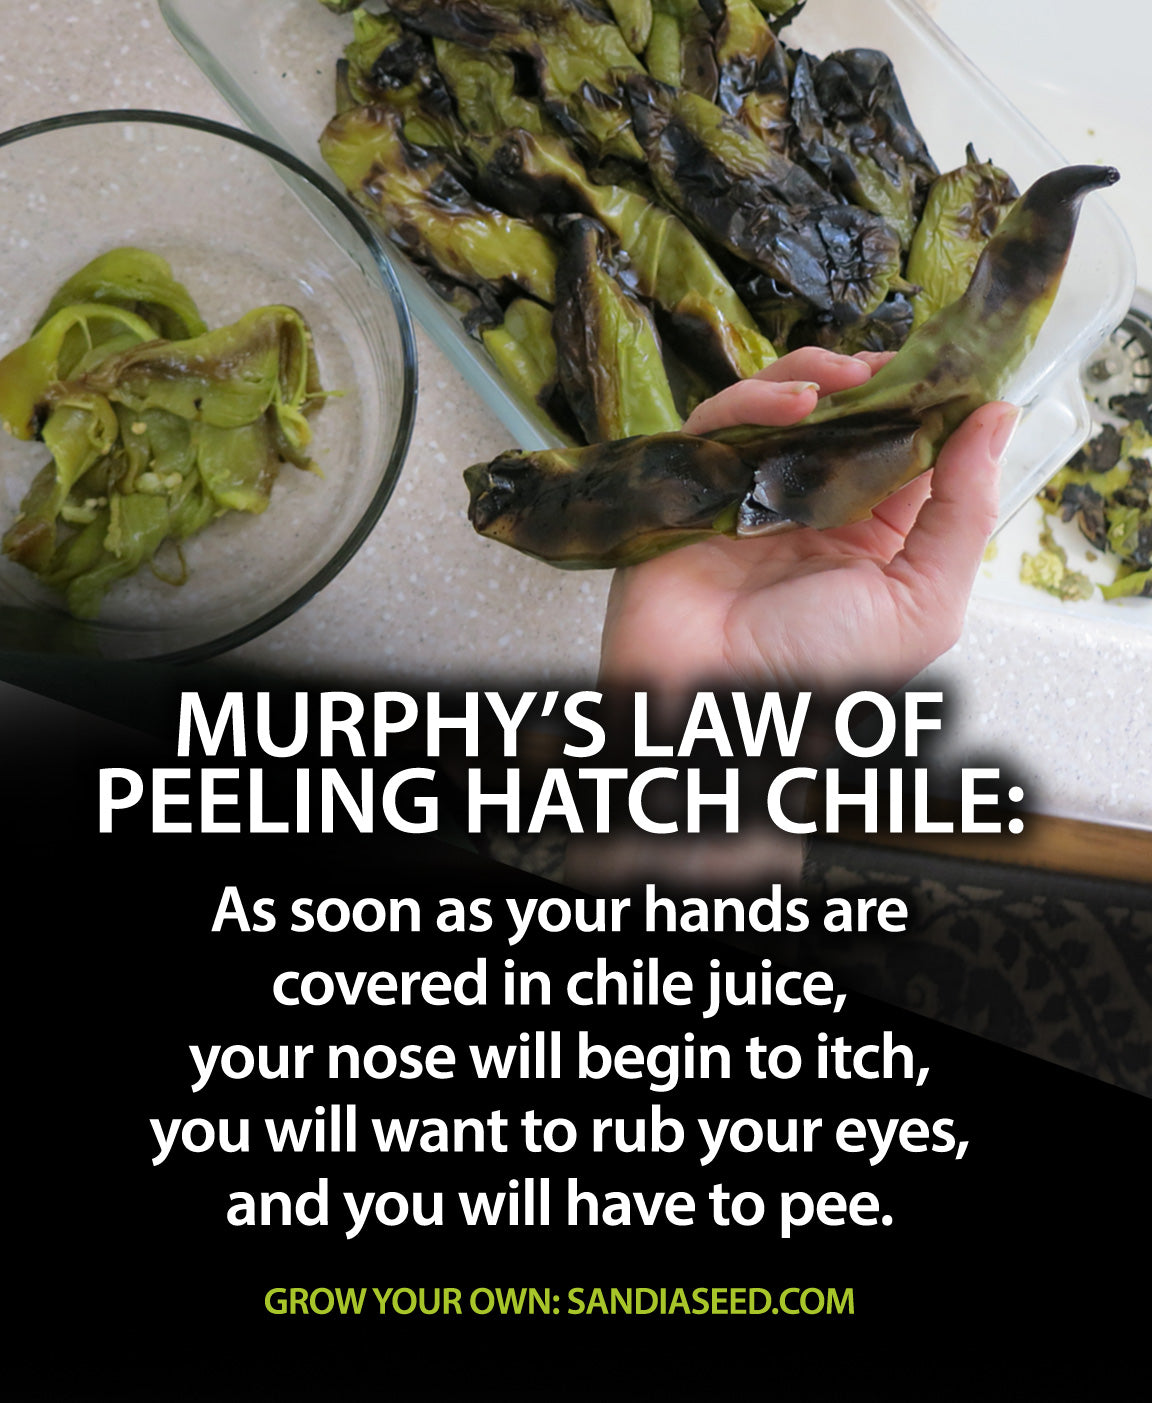 Murphys Law of Peeling Hatch Chile